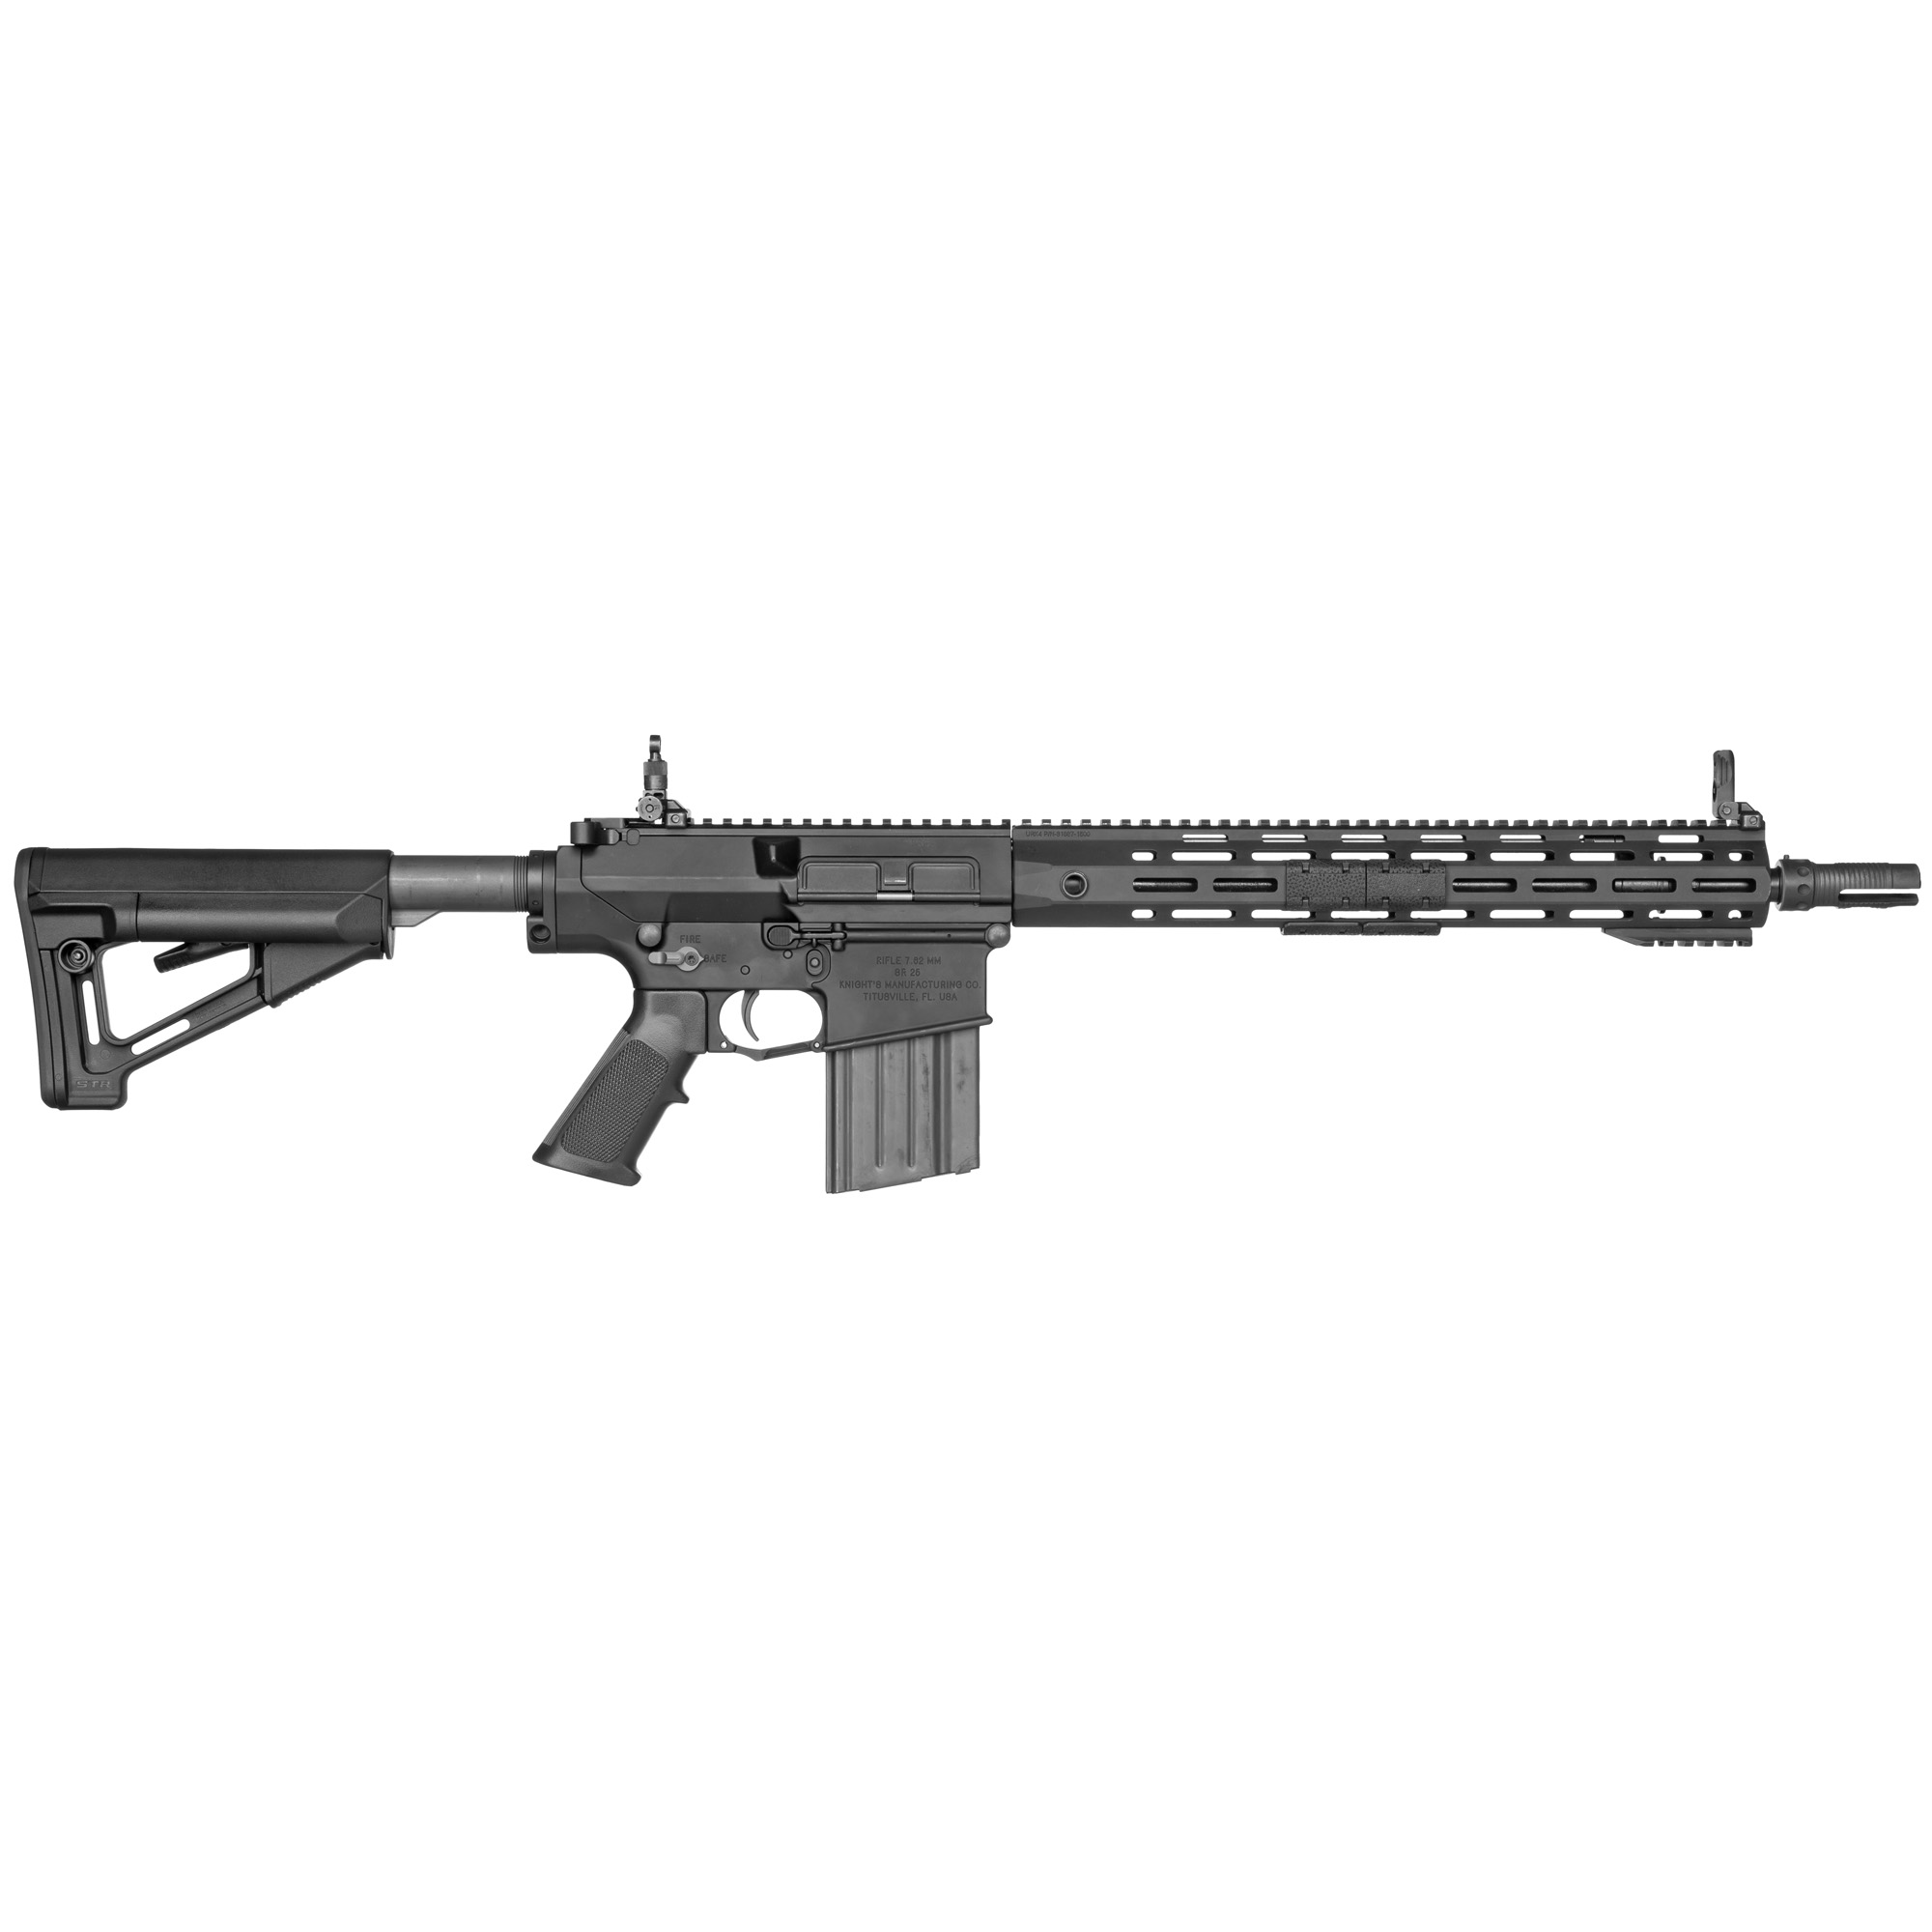 """The SR-25 E2 ACC is the latest evolution of the lightweight 7.62mm NATO Carbine. The ACC provides 7.62mm NATO performance in a package of comparable weight and size to common lower caliber platforms. Barrel and bolt life well exceed the expectation of a lightweight carbine. An ambidextrous bolt release"""" selector"""" and magazine release offer the left-handed user the ergonomic advantages inherent to AR15 based controls."""